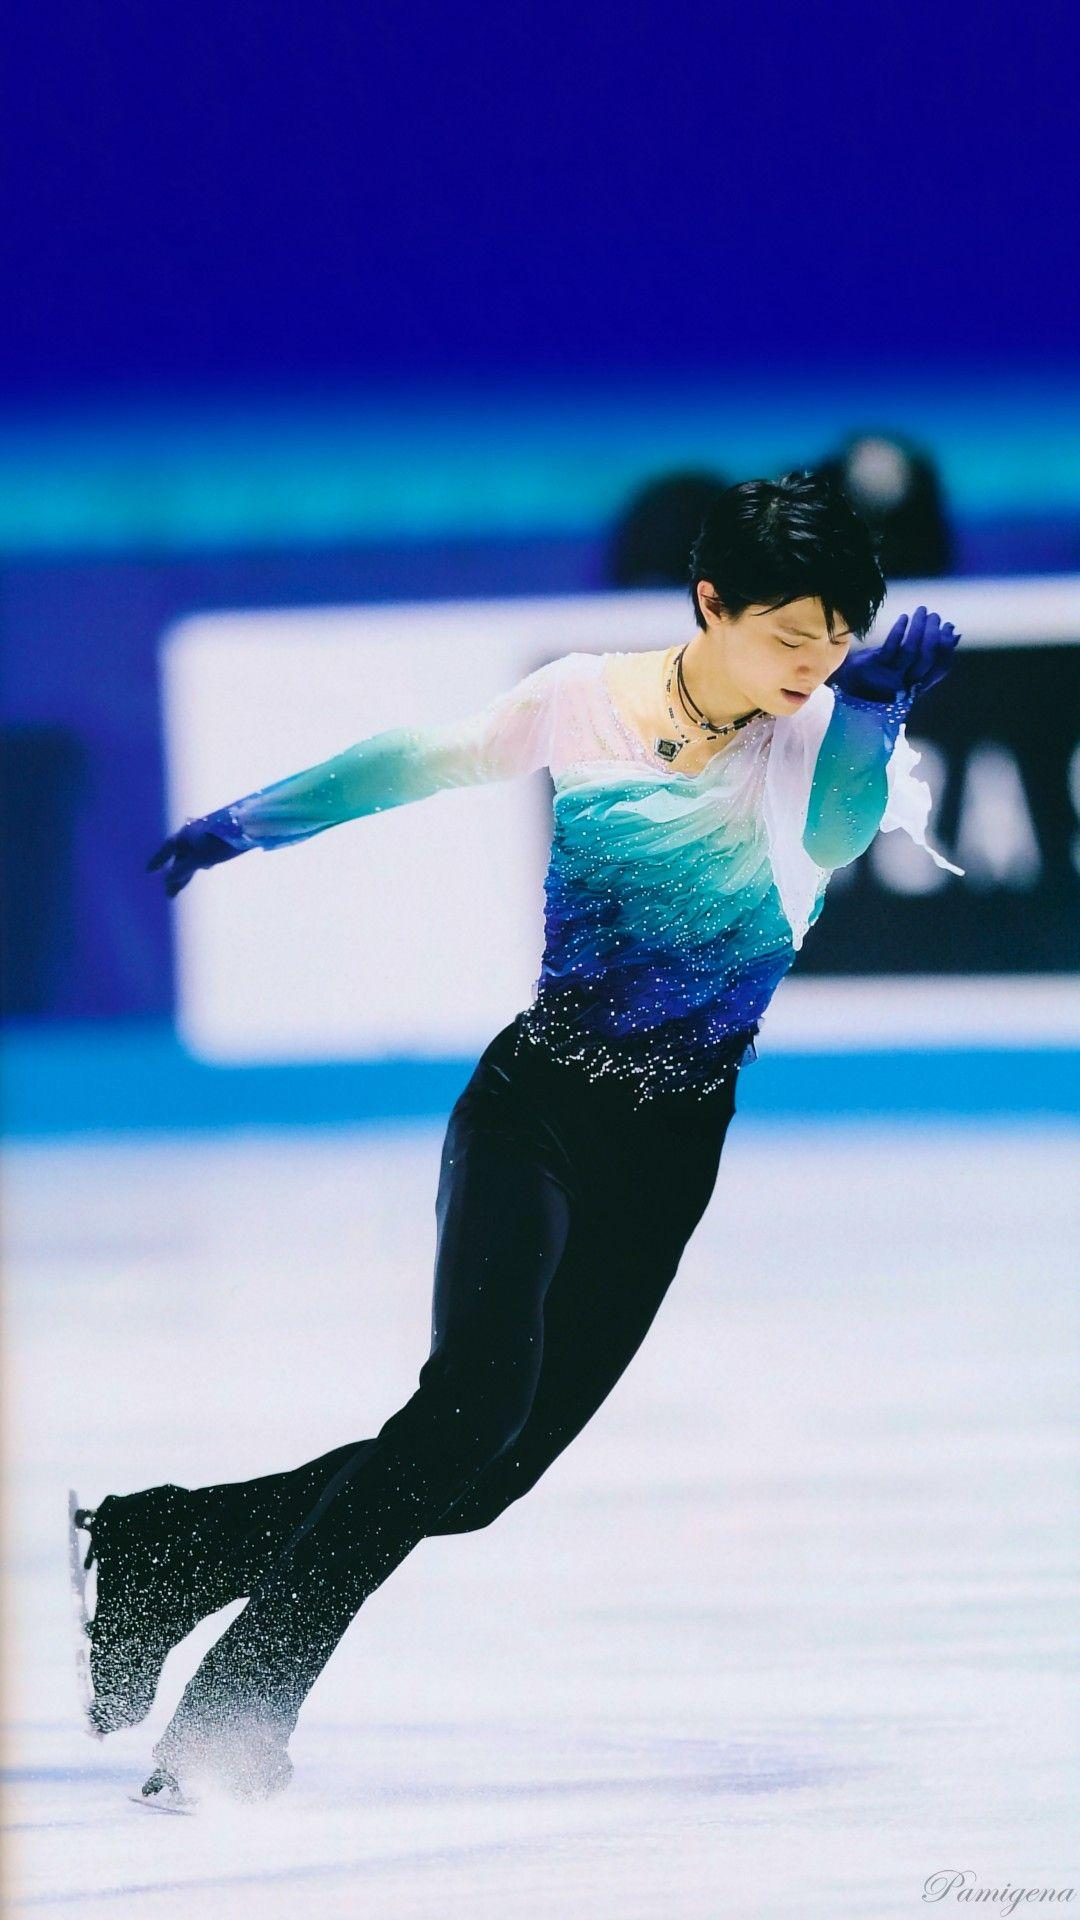 Hanyu Yuzuru wallpapers